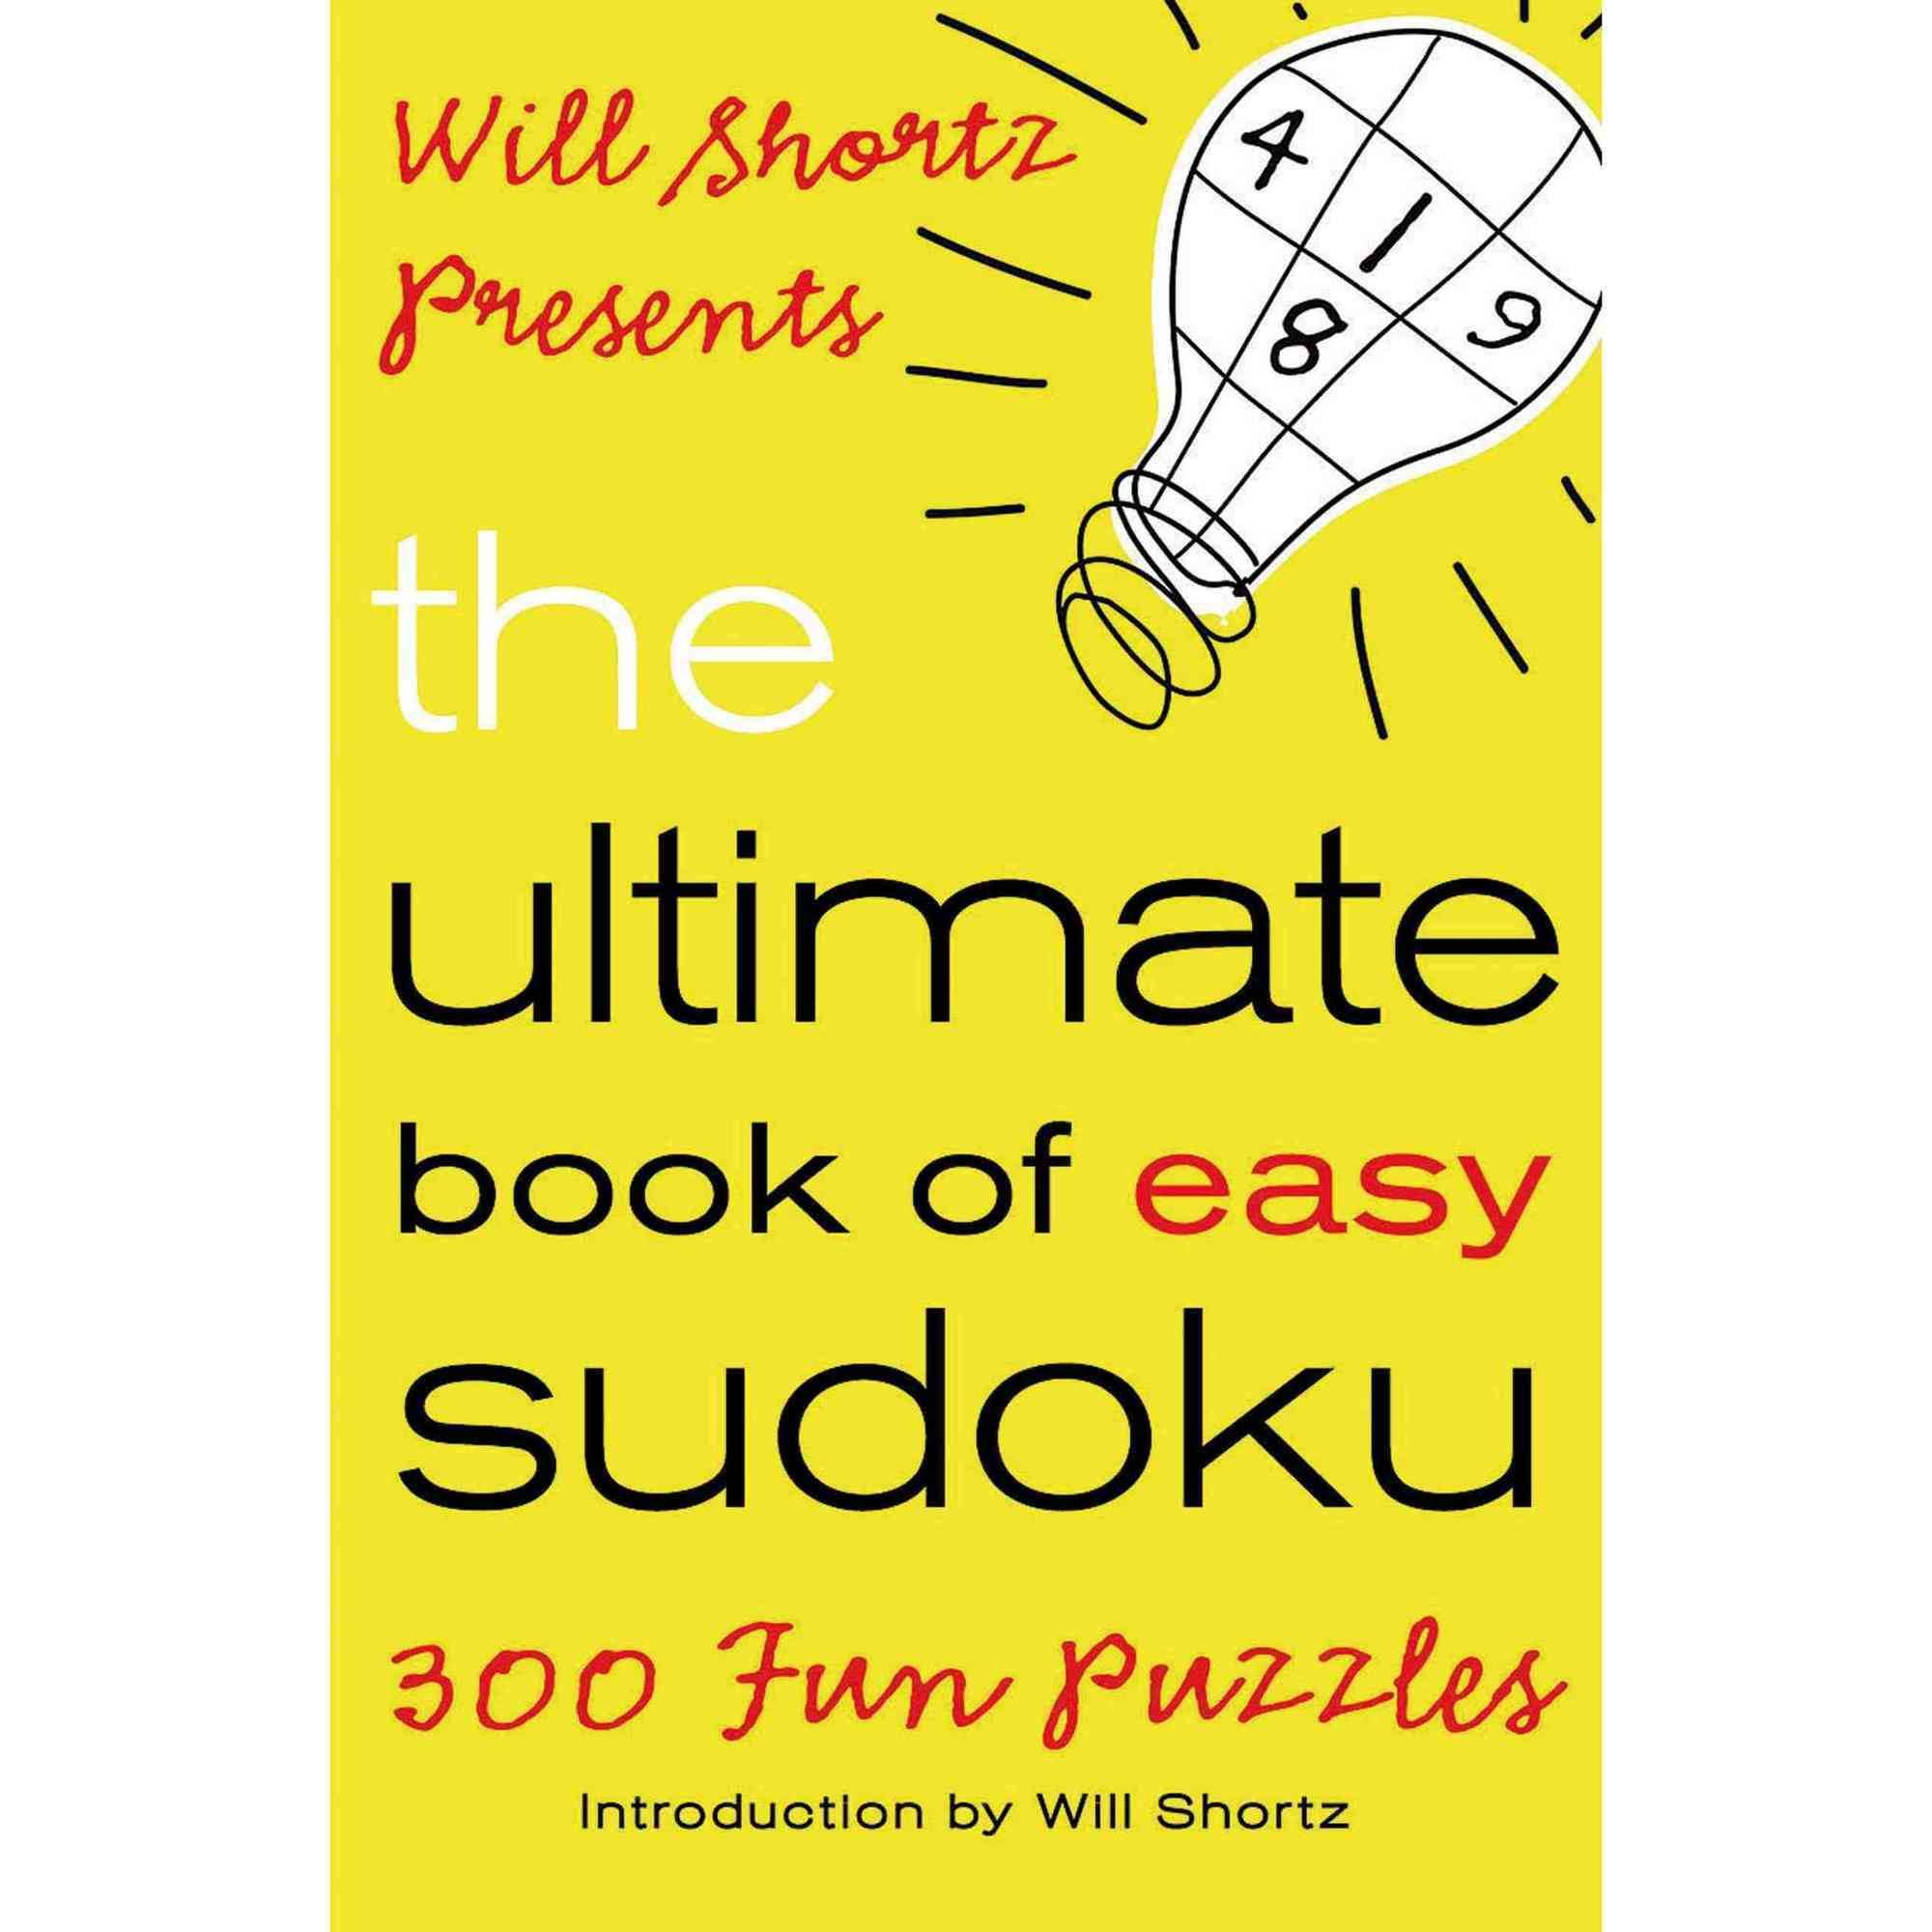 Will Shortz Presents the Ultimate Book of Easy Sudoku: 300 Fun Puzzles